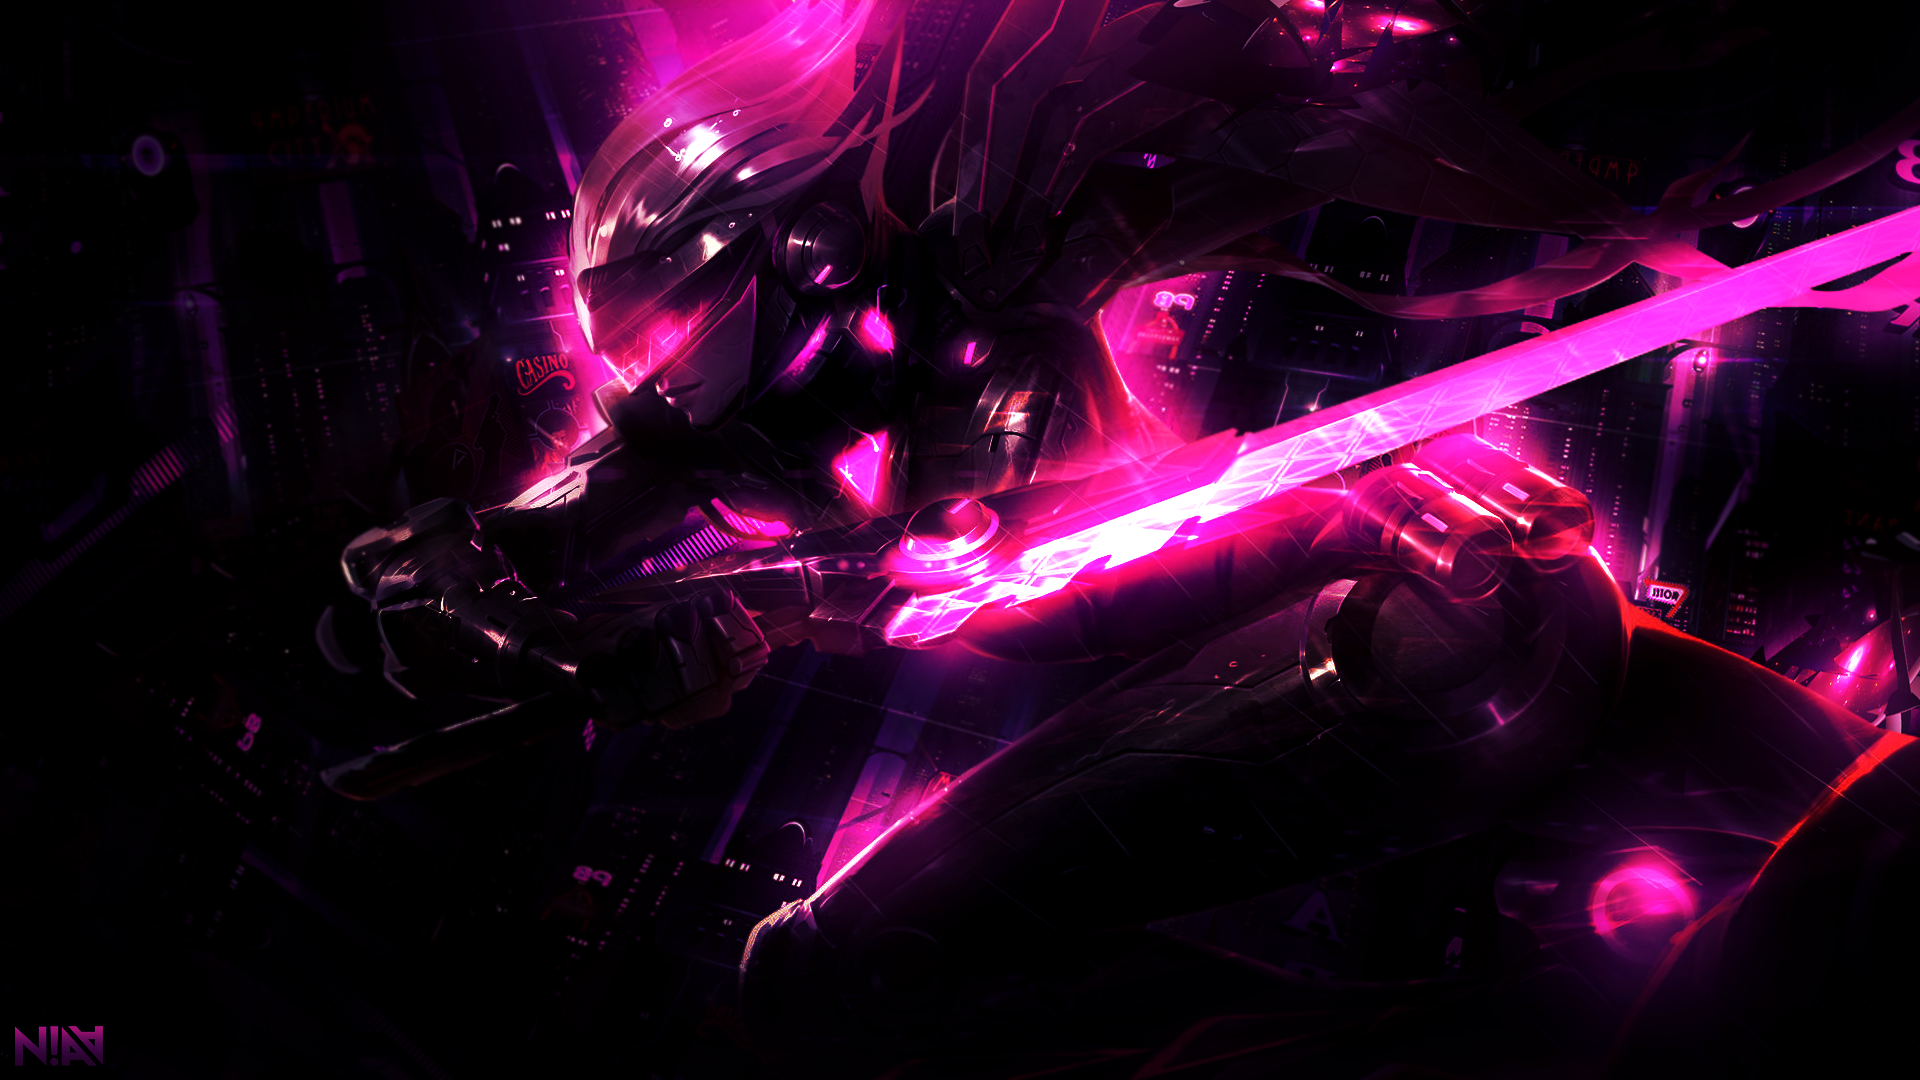 project fiora wallpaper 1920x1080 by aliceemad on